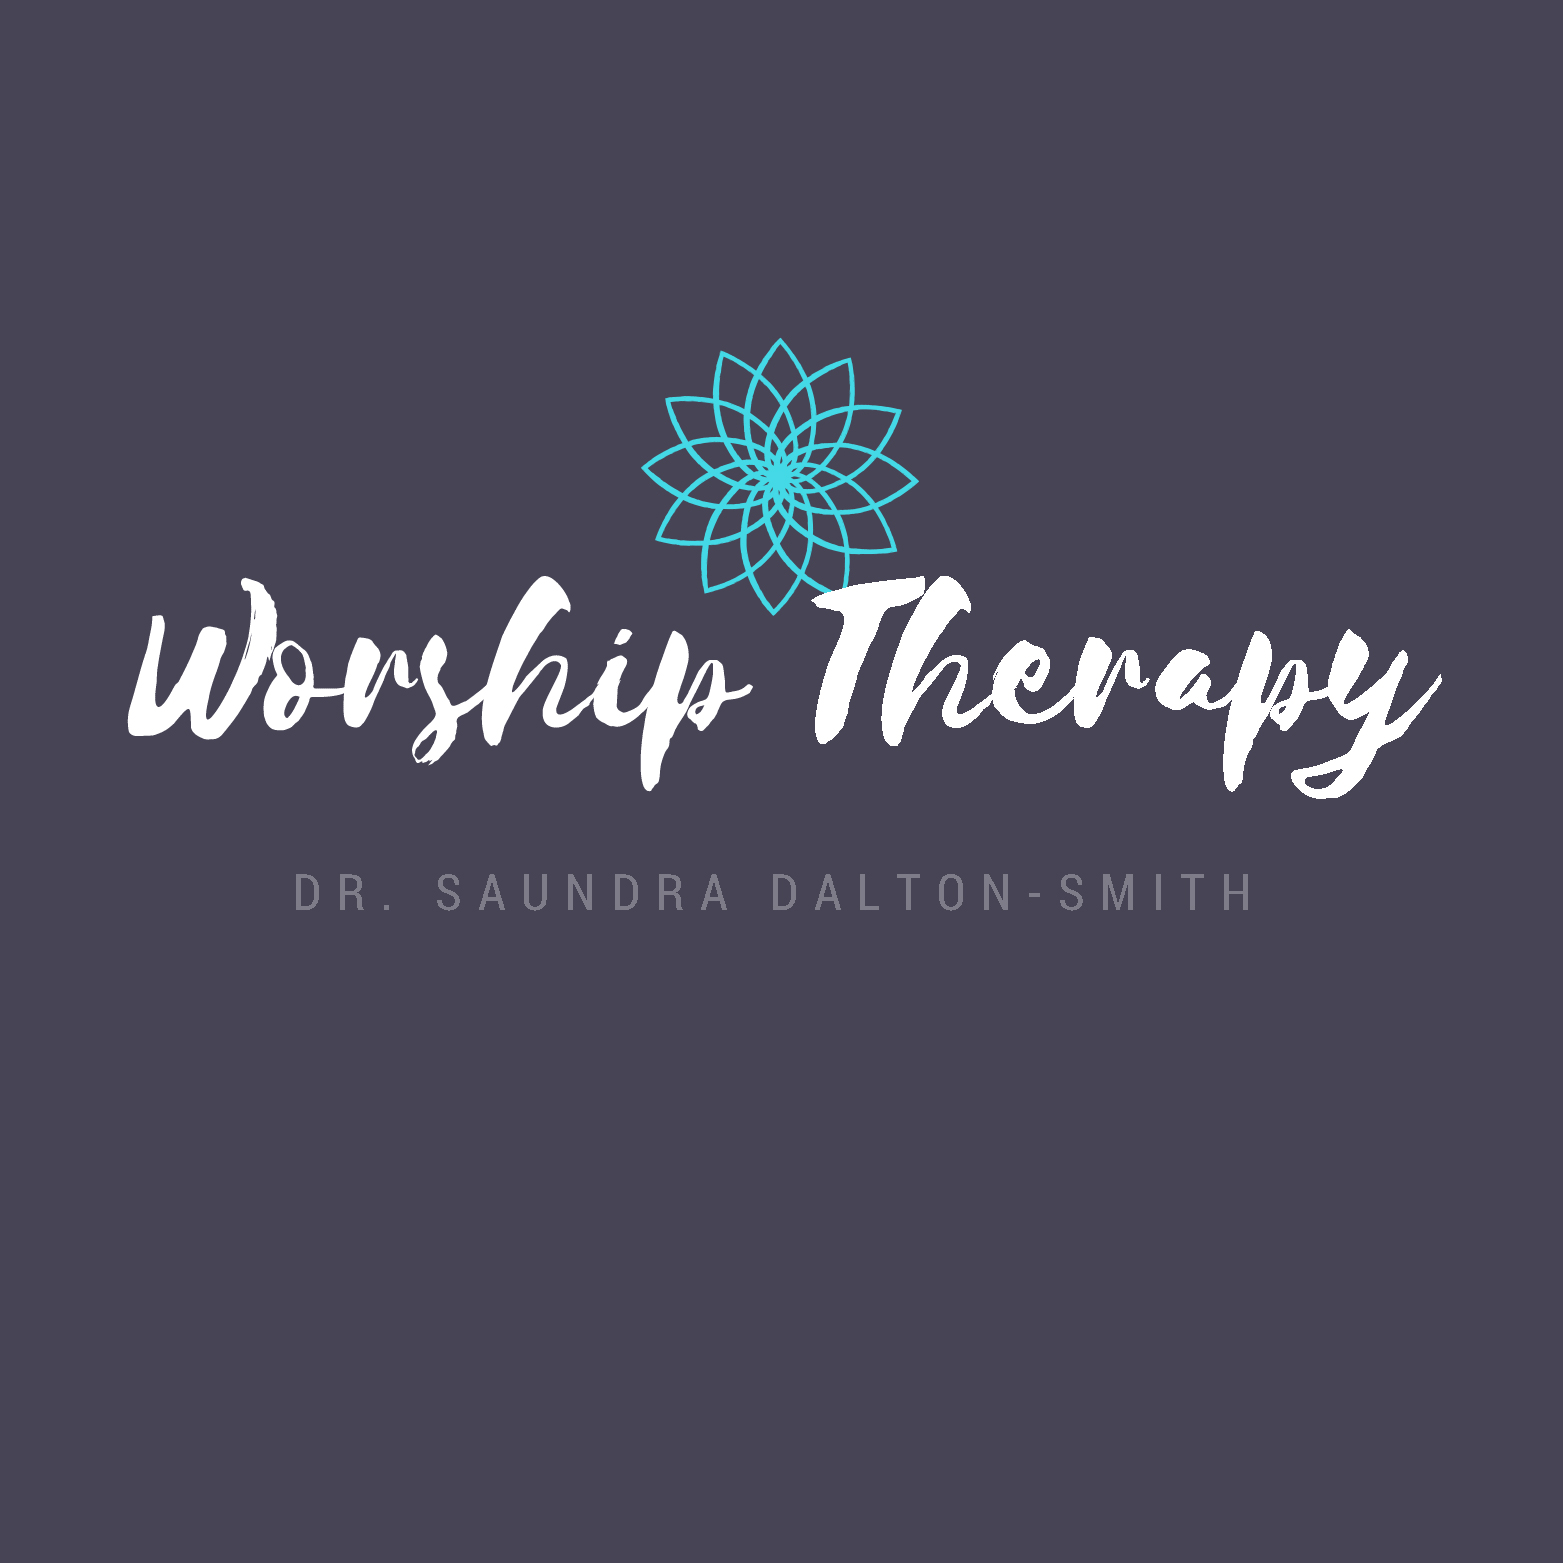 Artwork for Worship Therapy: 10,000 Reasons